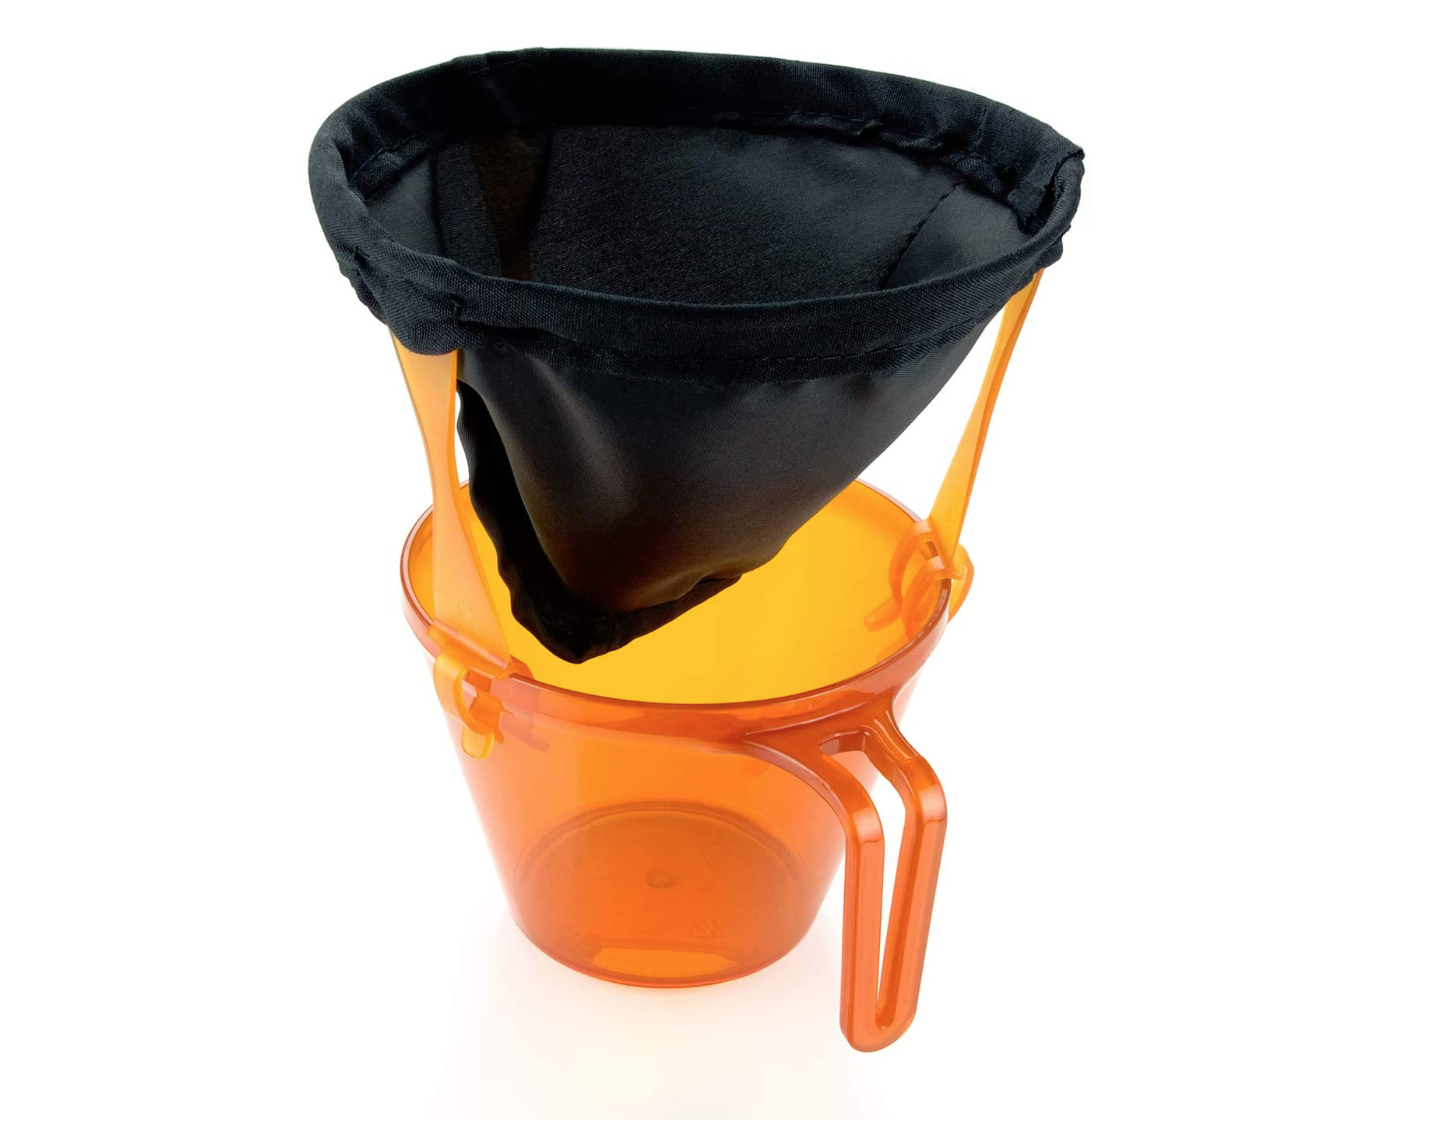 GSI Outdoors Ultralight Java Drip for Drip Coffee While Camping and Backpacking